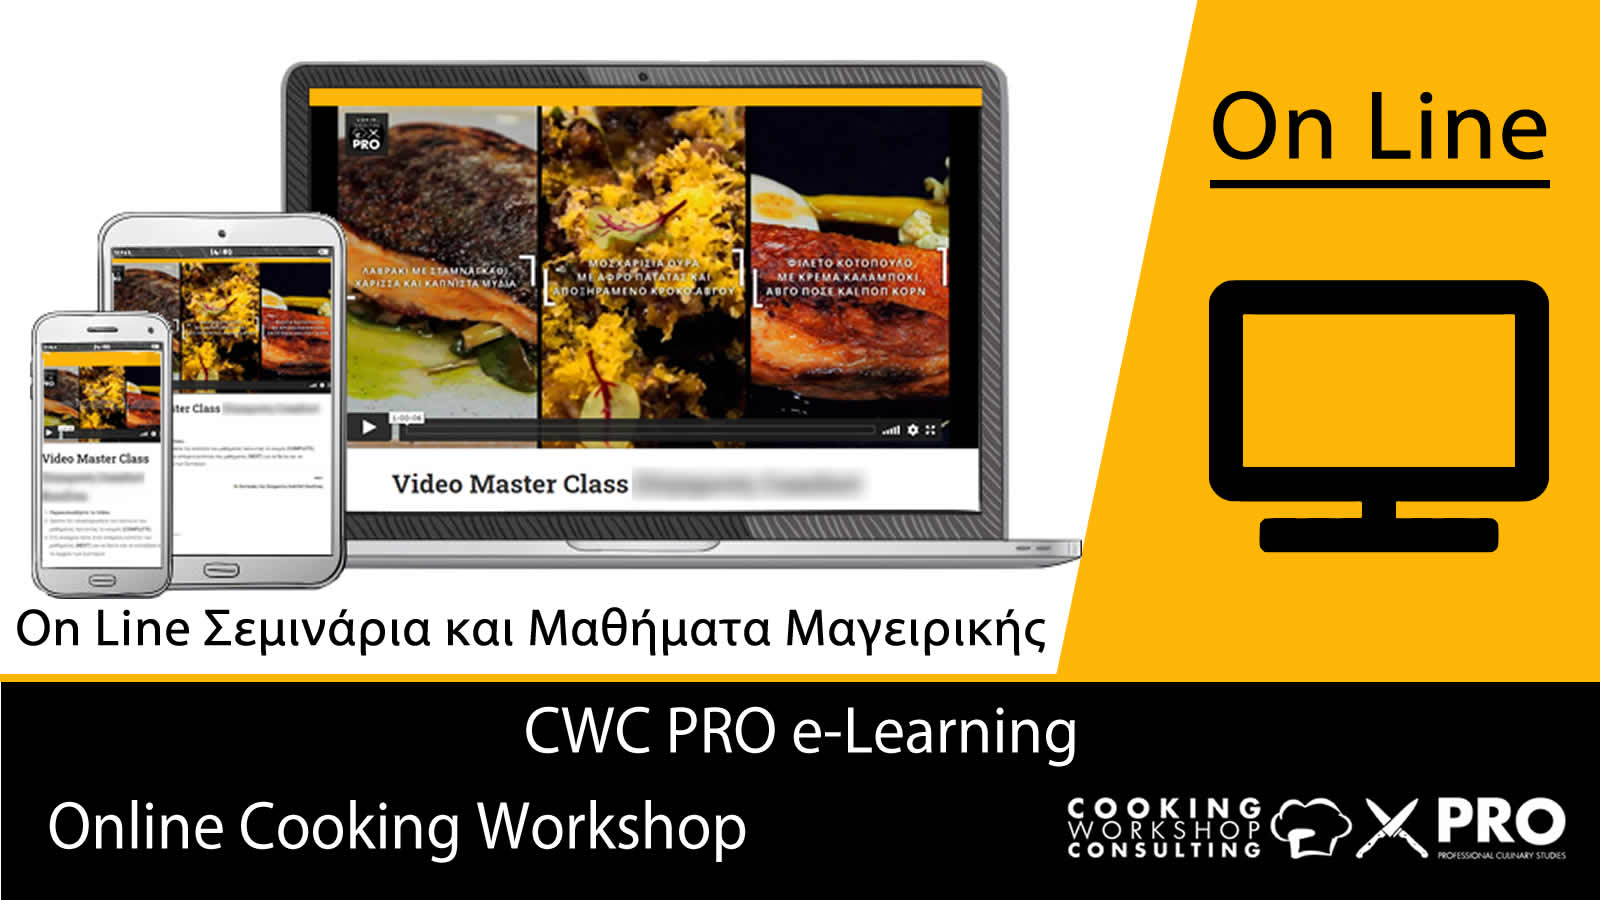 OnLine Master Class CWC PRO Cooking Workshop Consulting